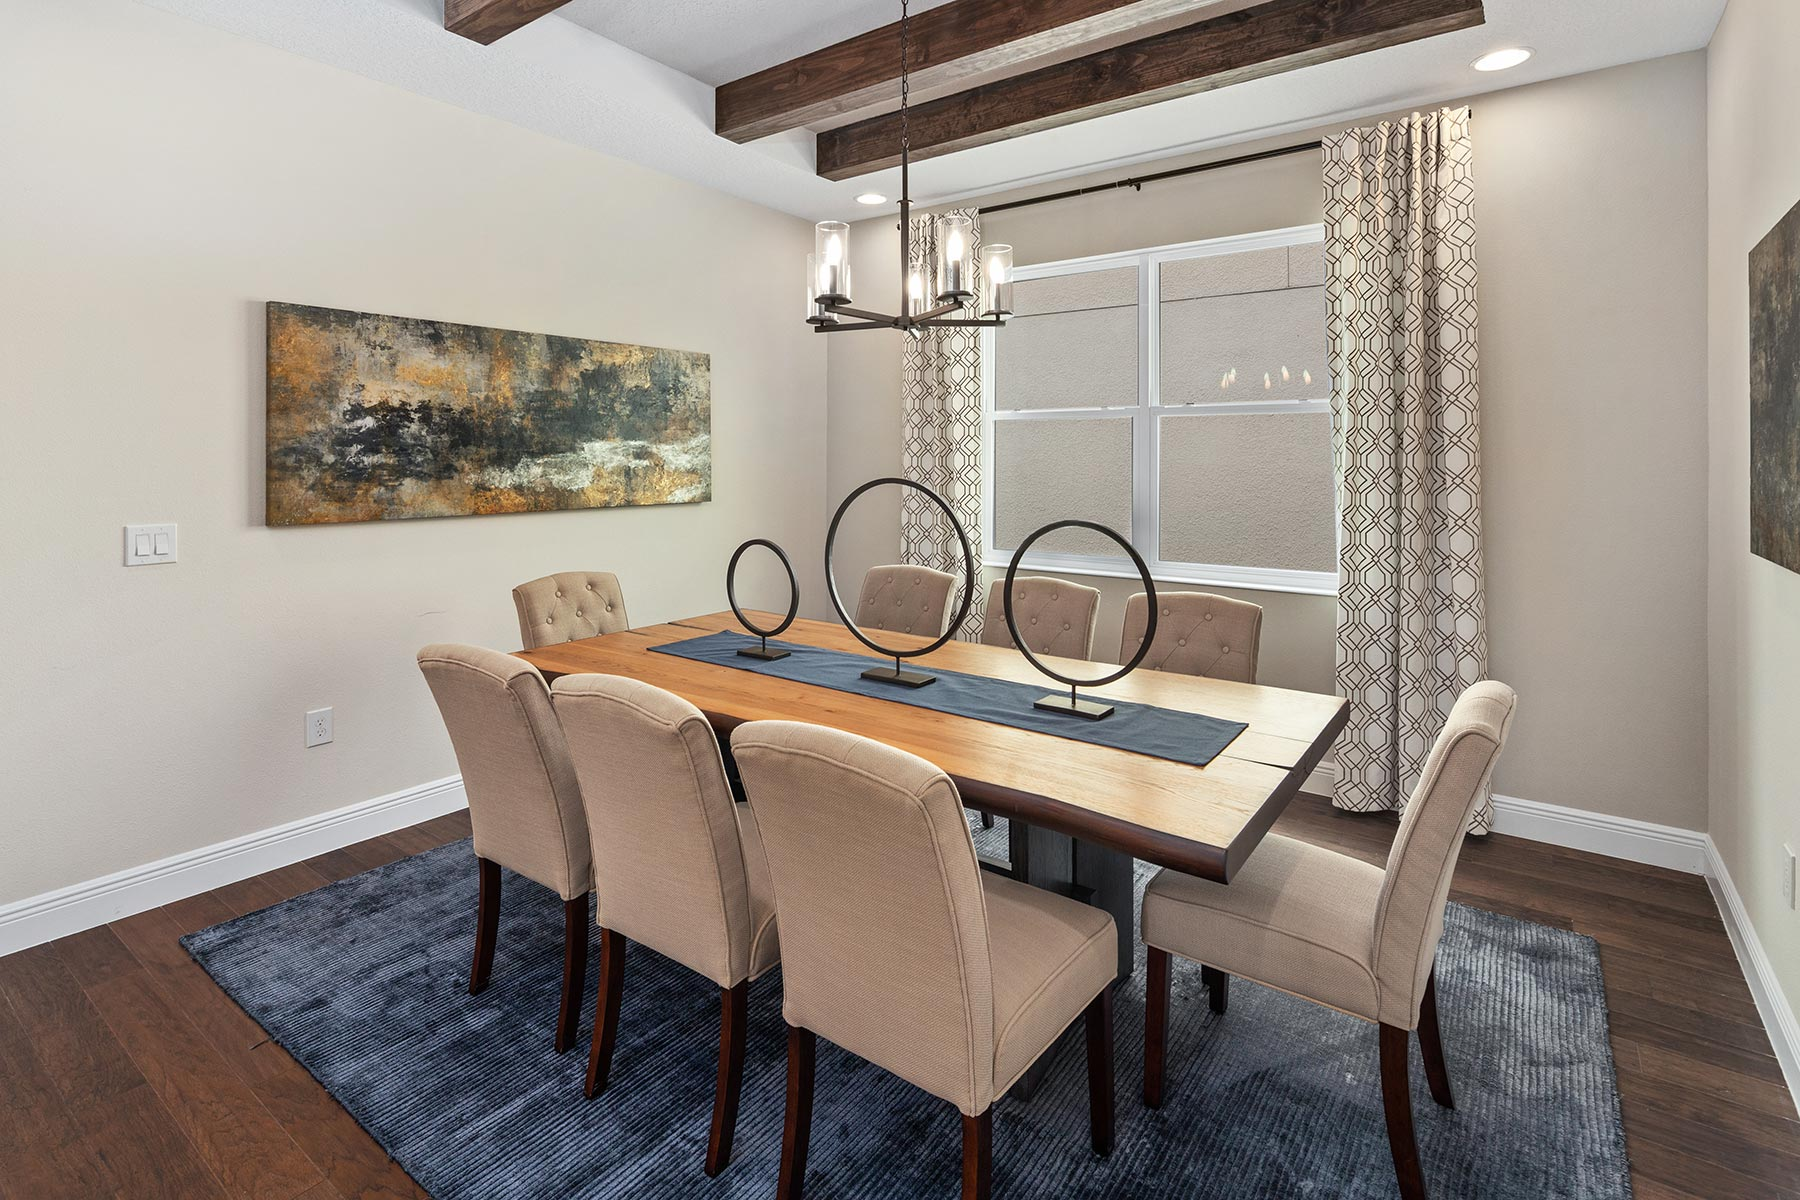 Glendale Plan Dining at Tohoqua in Kissimmee Florida by Mattamy Homes